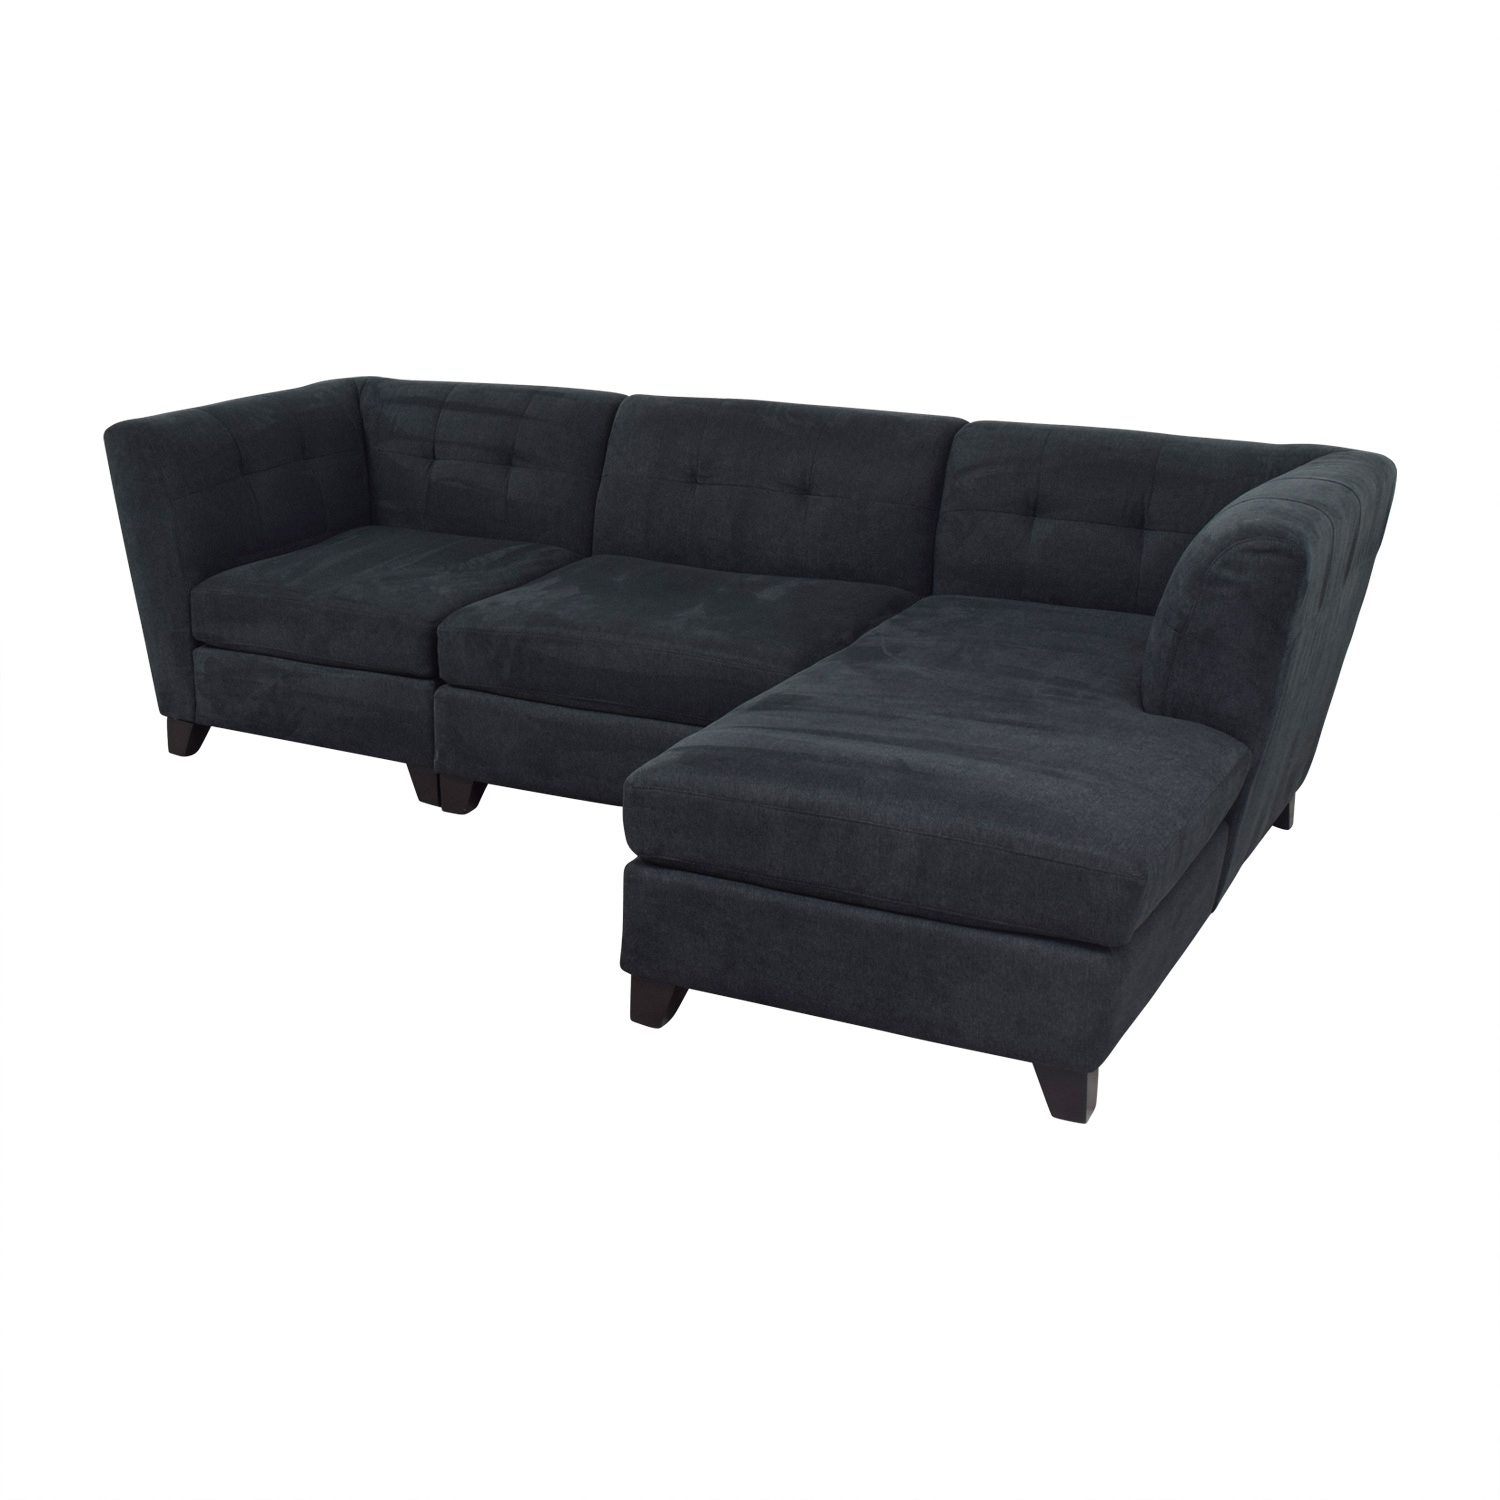 69% Off   Raymour & Flanigan Raymour & Flanigan Tate Microfiber With Regard To Sectional Sofas At Raymour And Flanigan (Photo 10 of 15)